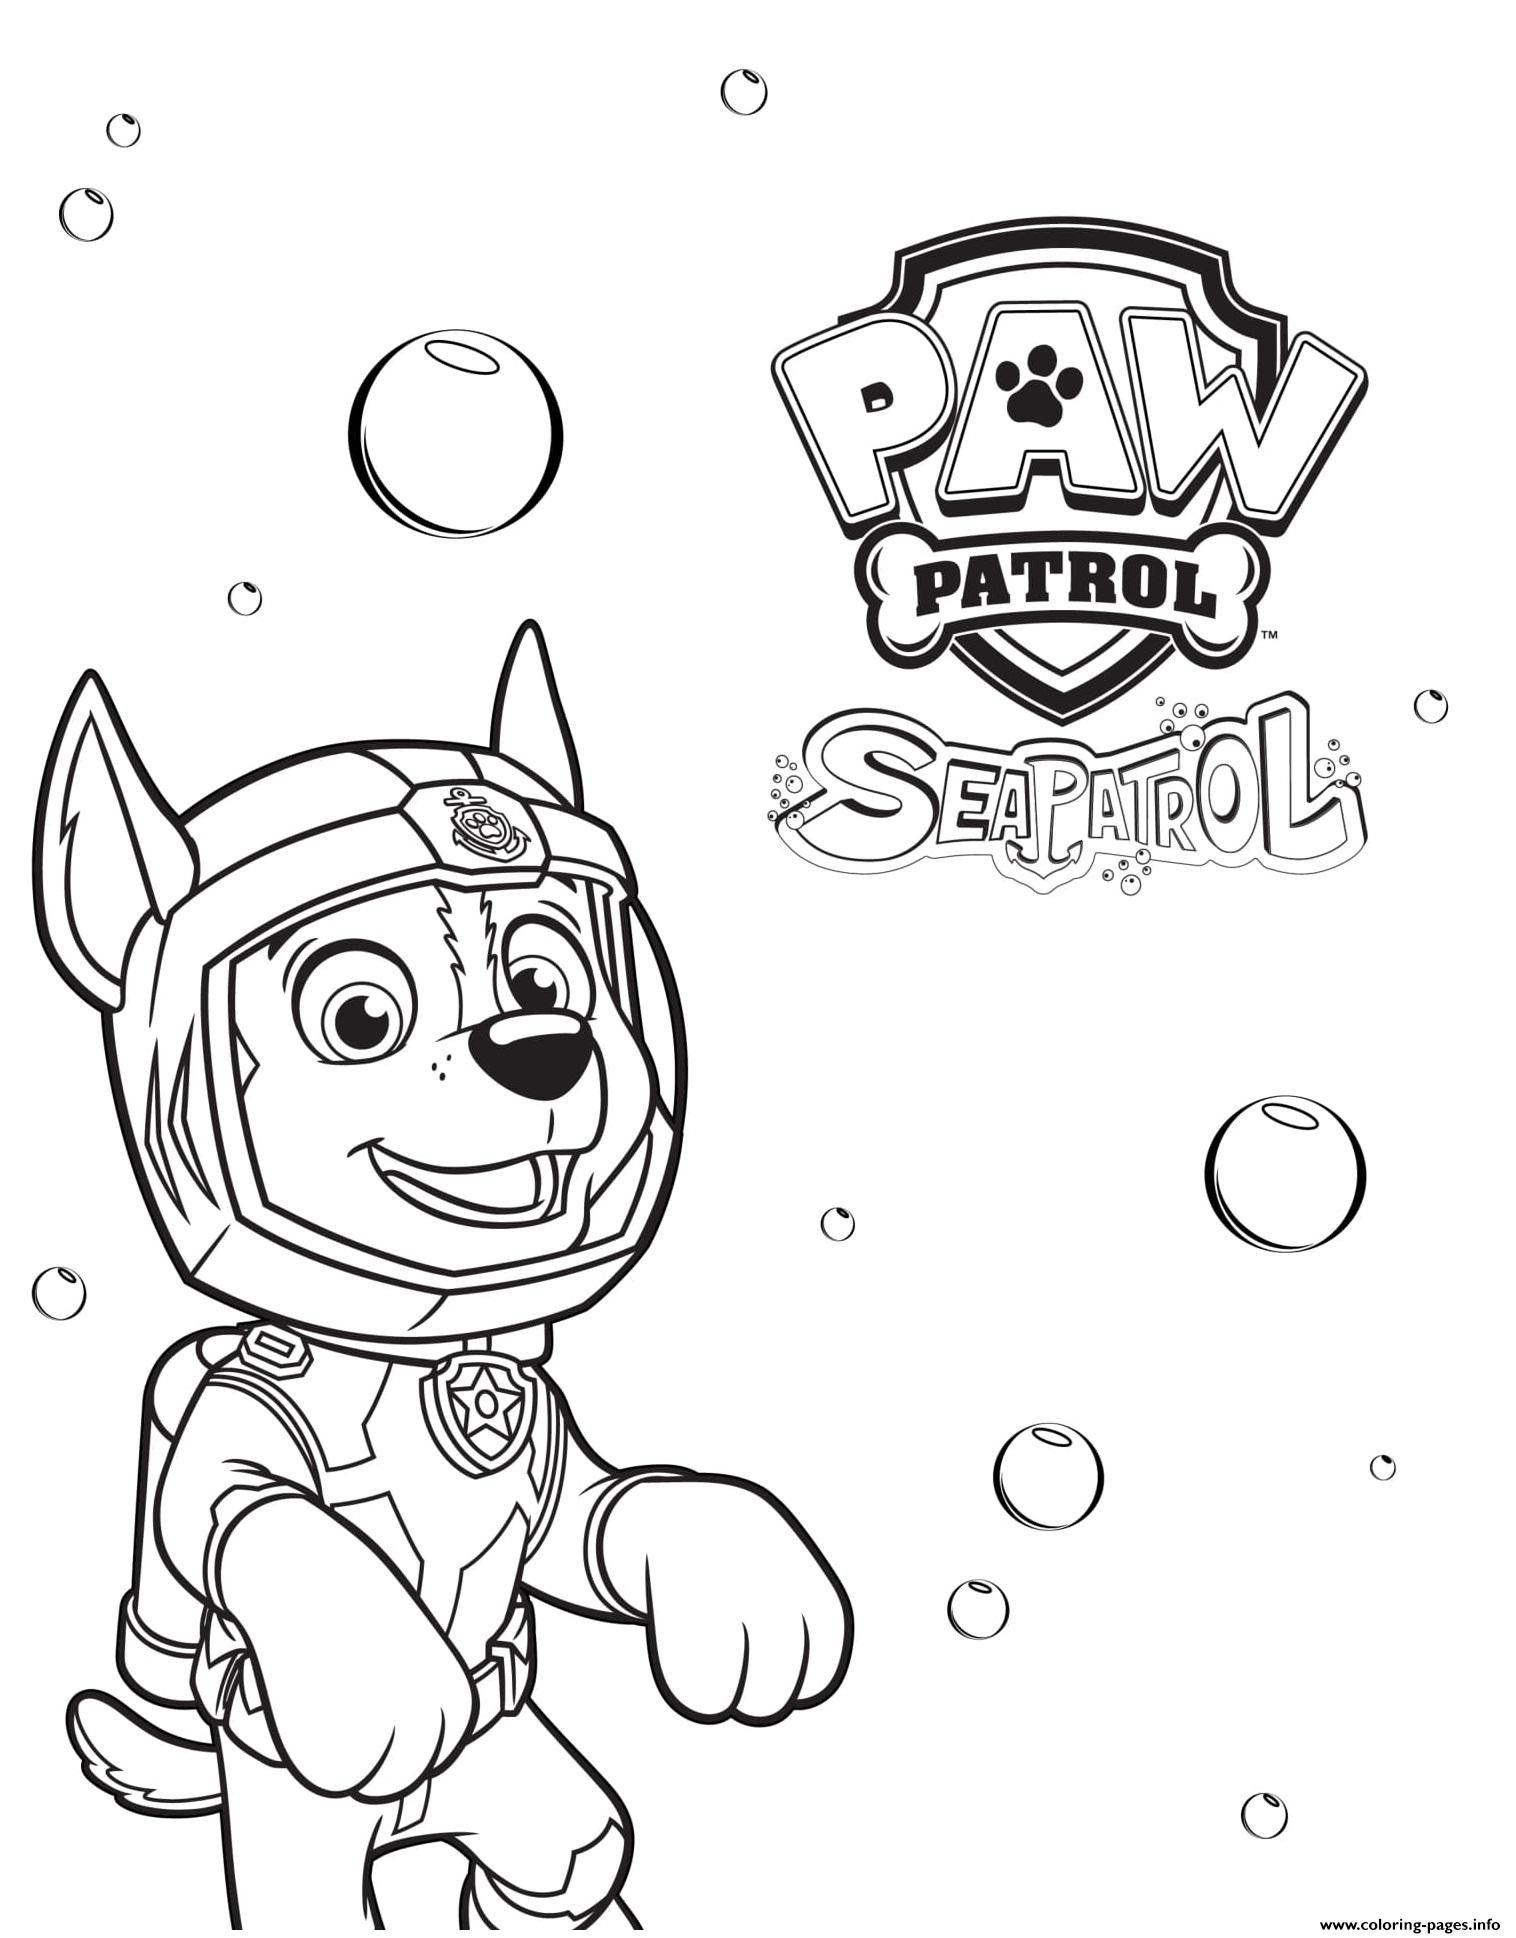 28++ Chase paw patrol coloring page ideas